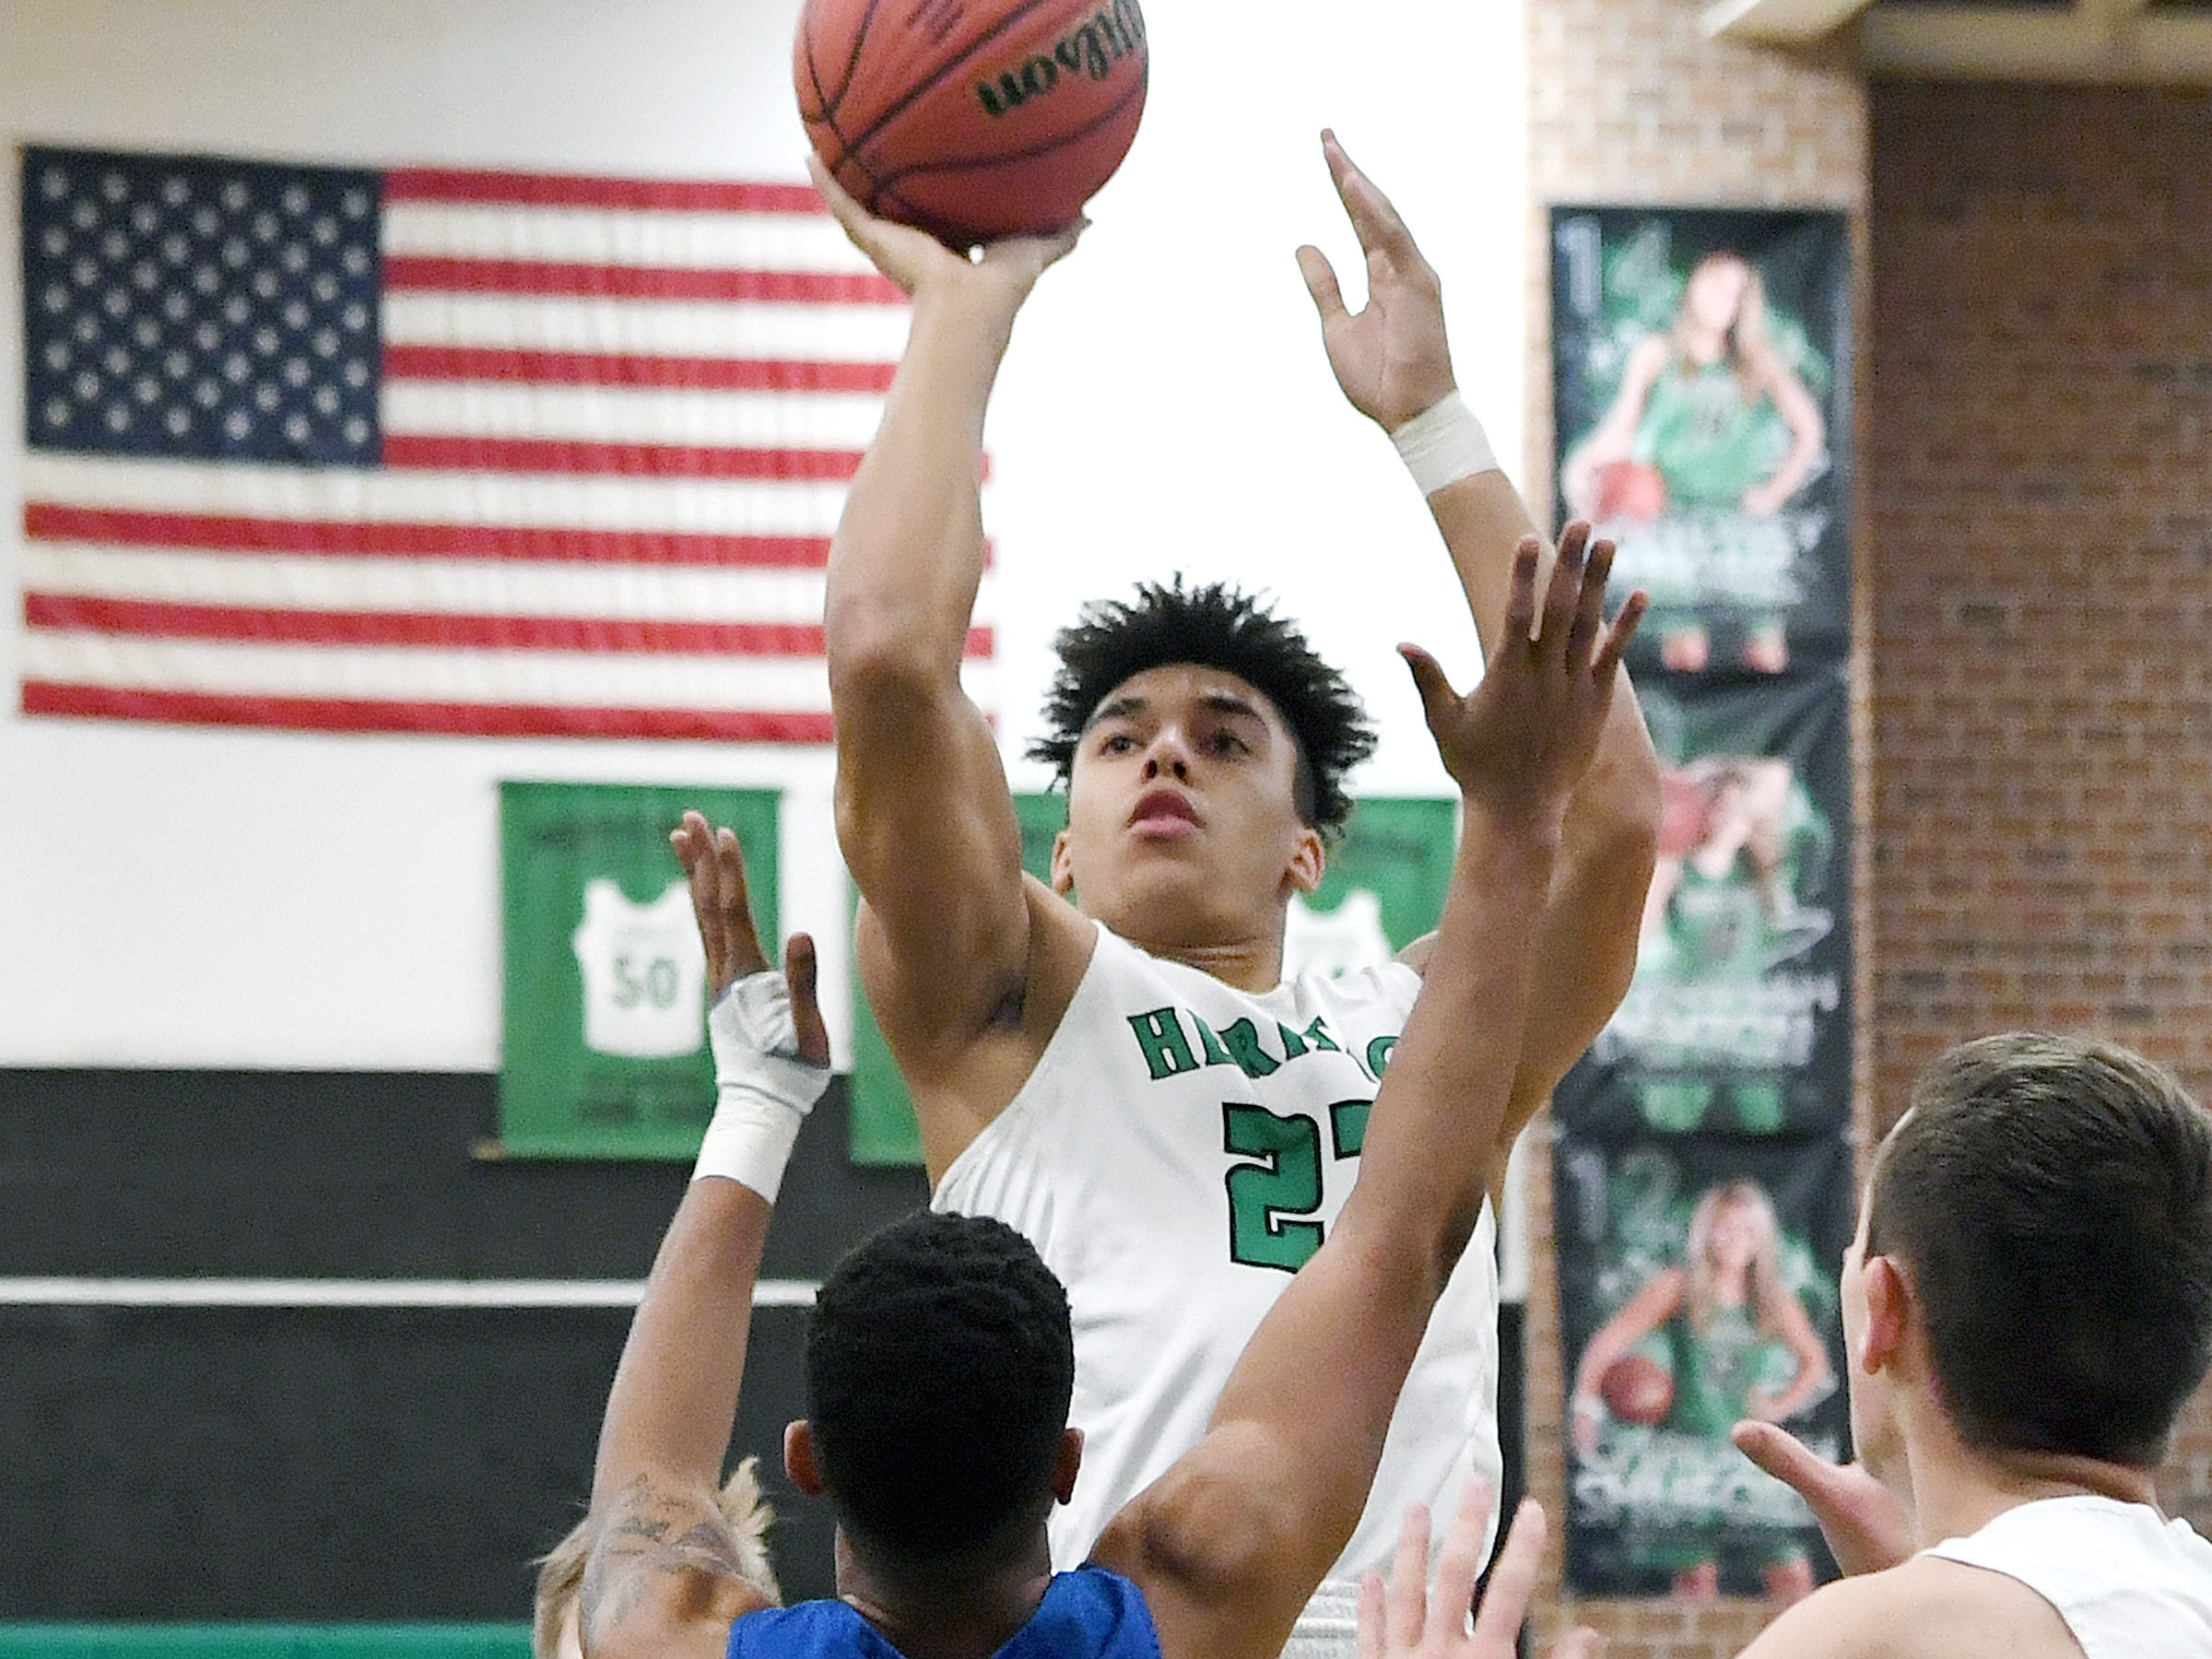 Mountain Heritage's Brandon Aumiller goes up for a shot against Maiden's Montrell Stinson during their playoff game at Mountain Heritage High School on Feb. 28, 2019. The Cougars won 74-69 in overtime to advance to the next round.